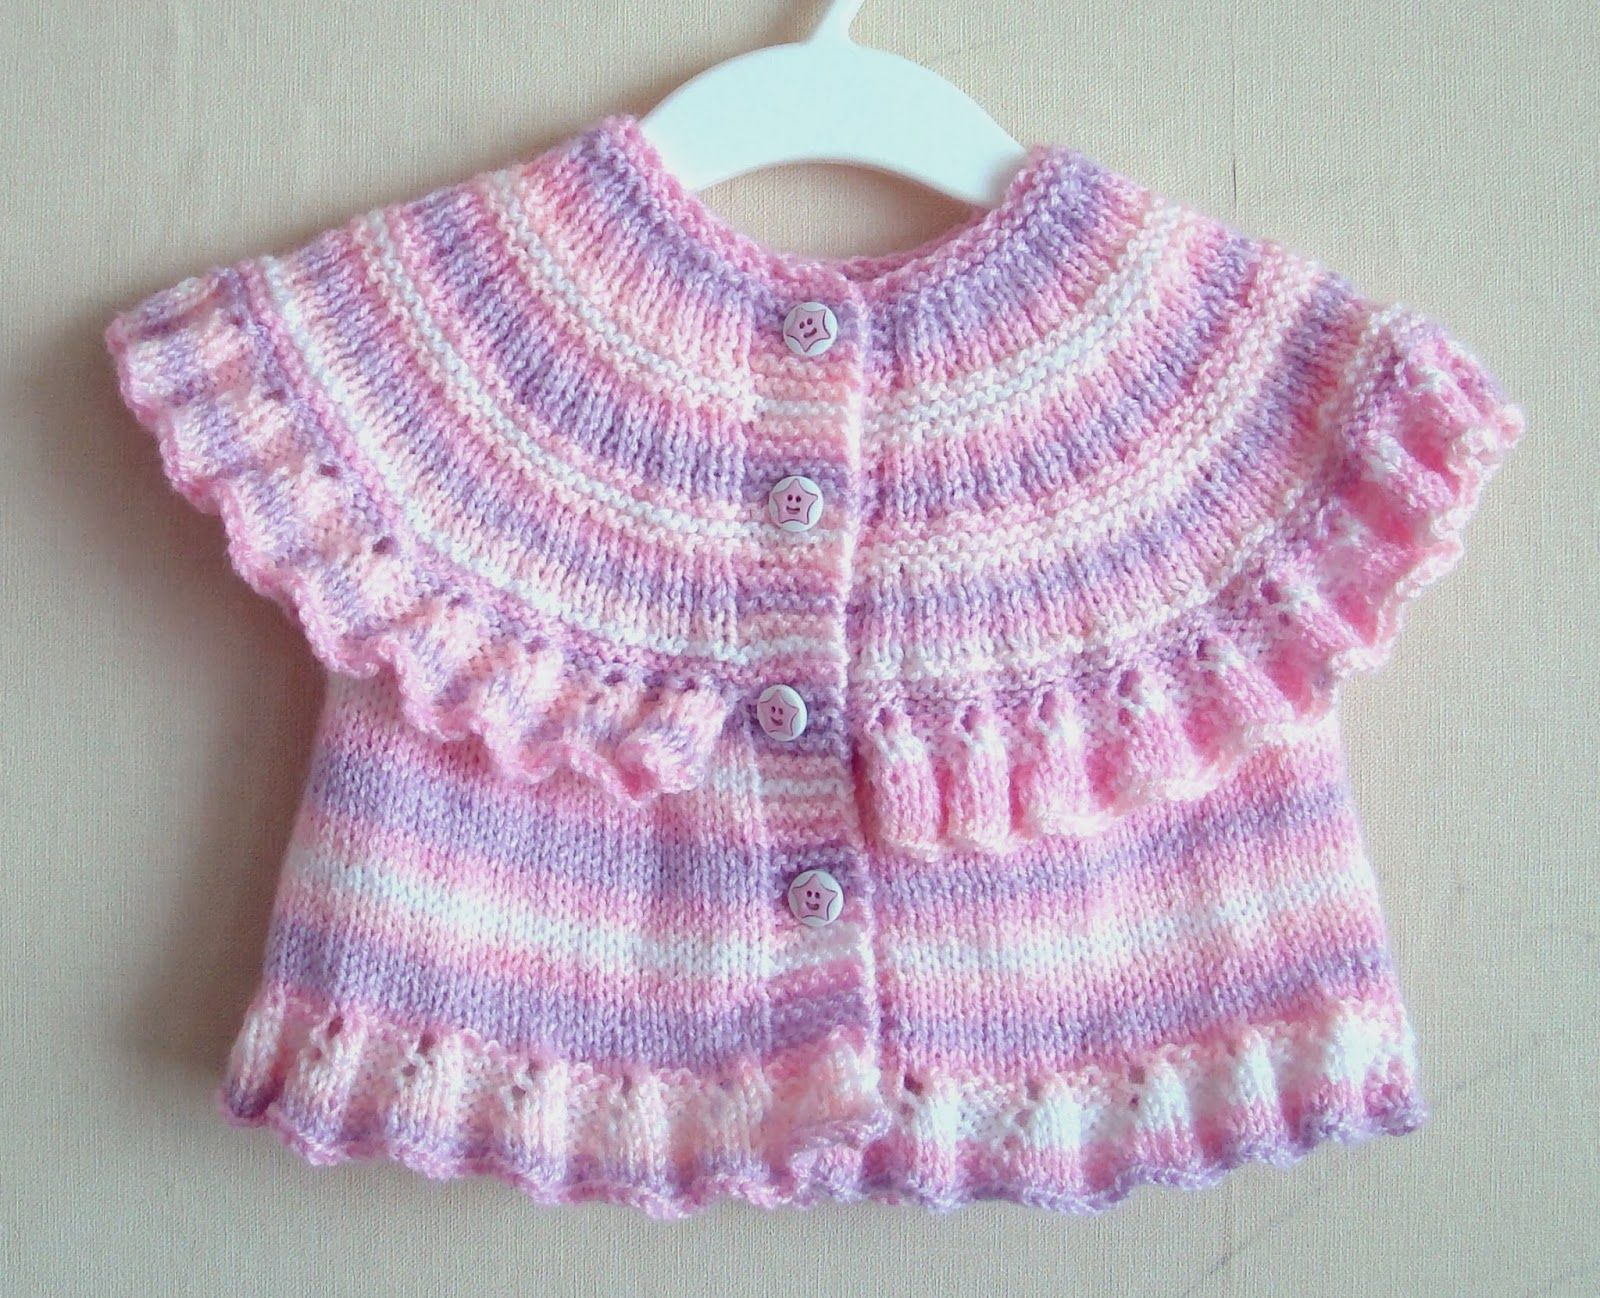 Ruffled Round Yoke Baby Vest for 6-12 months girl (worked top down ...